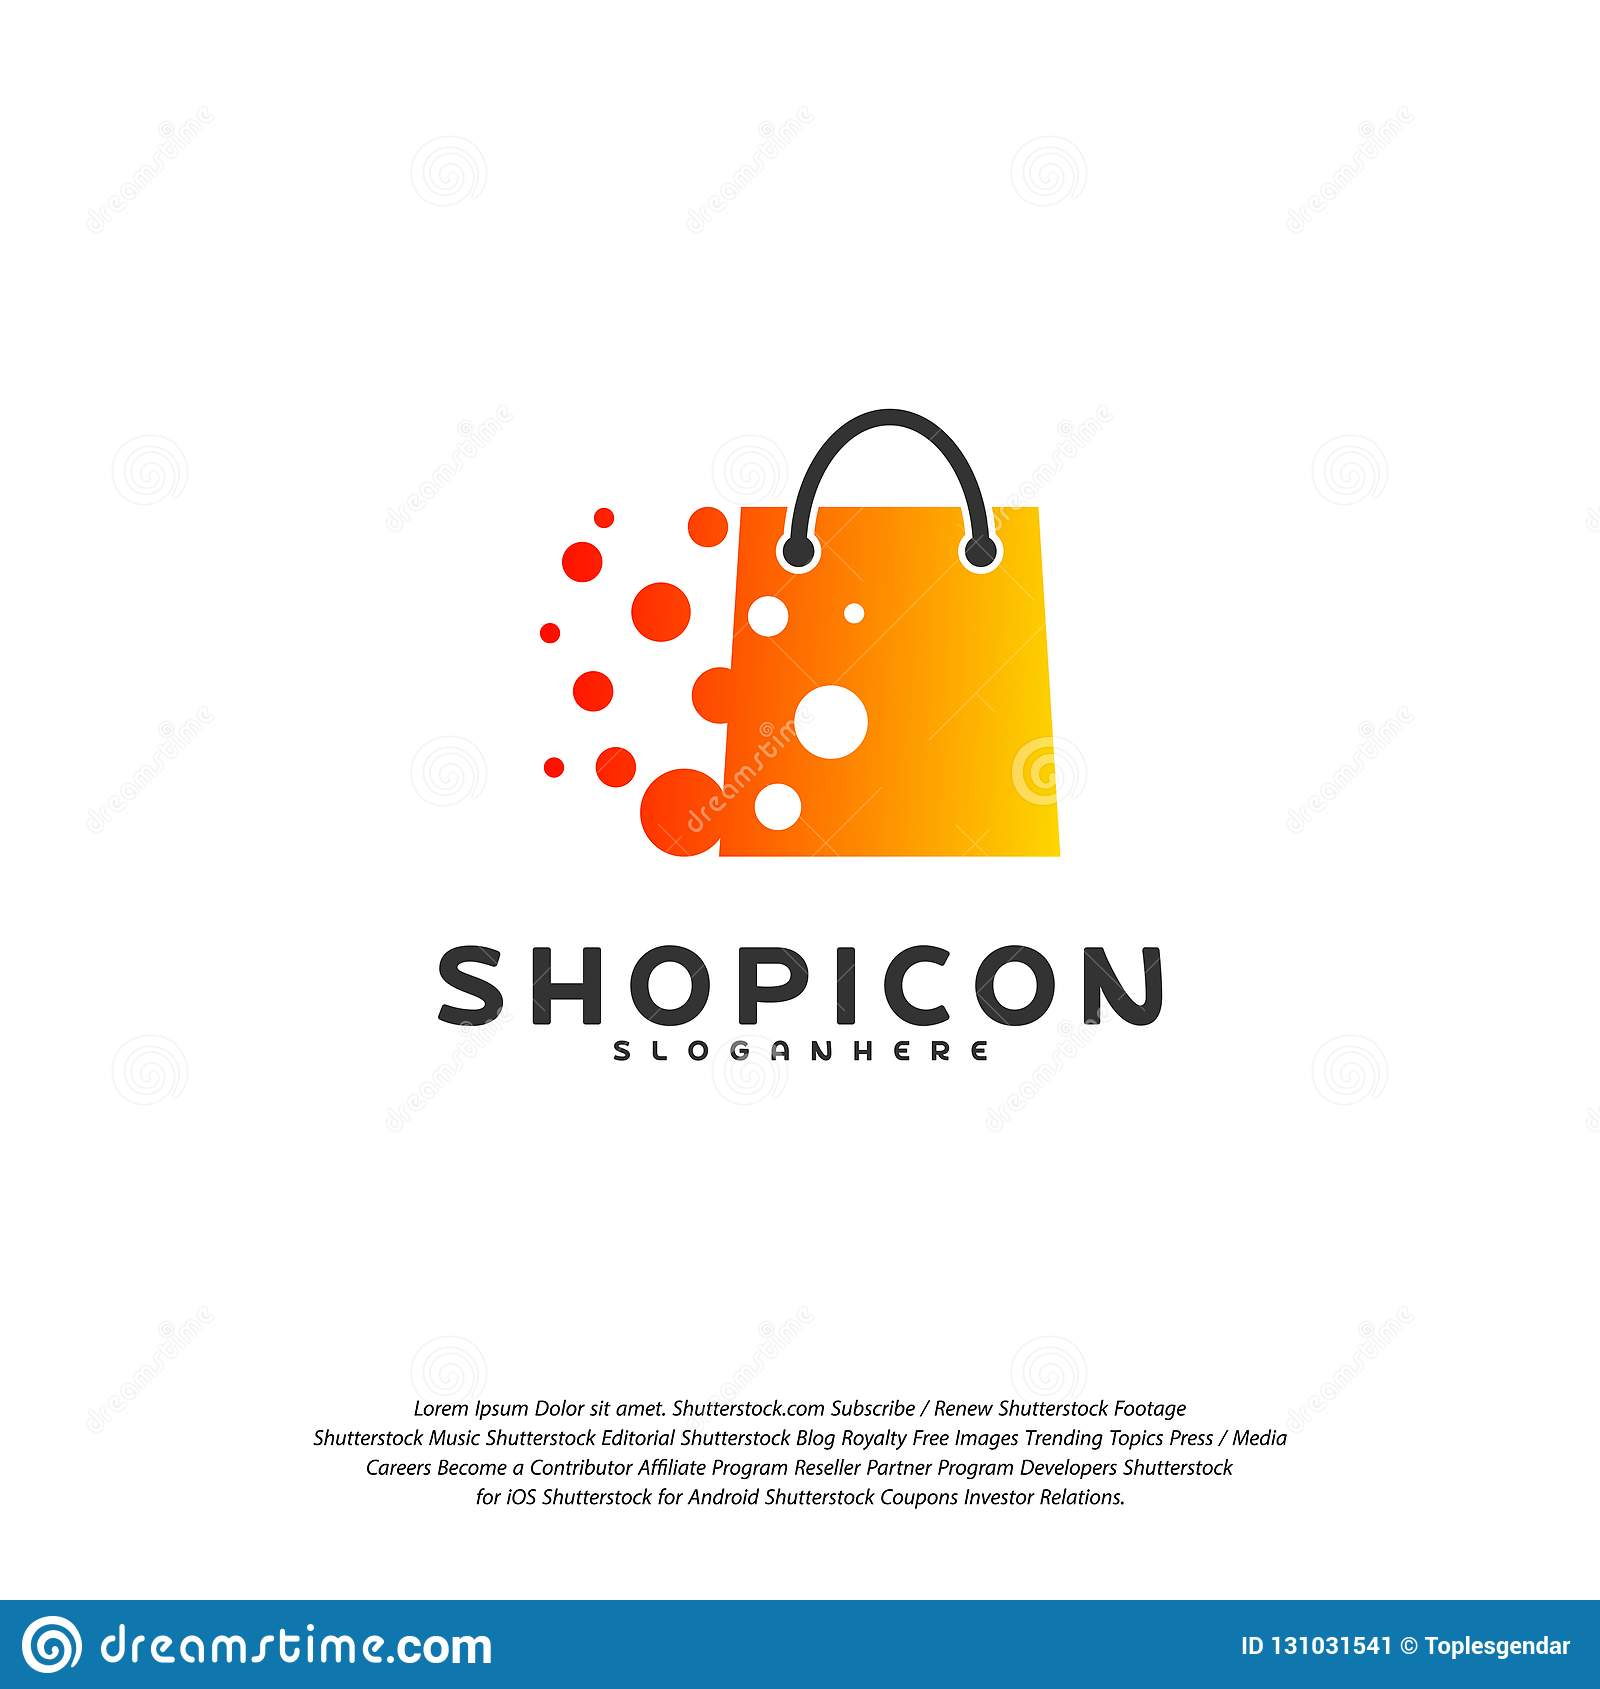 Online Shop Store Market Logo Template Design Vector Pixel Shop Logo Design Element Stock Vector Illustration Of Element Price 131031541